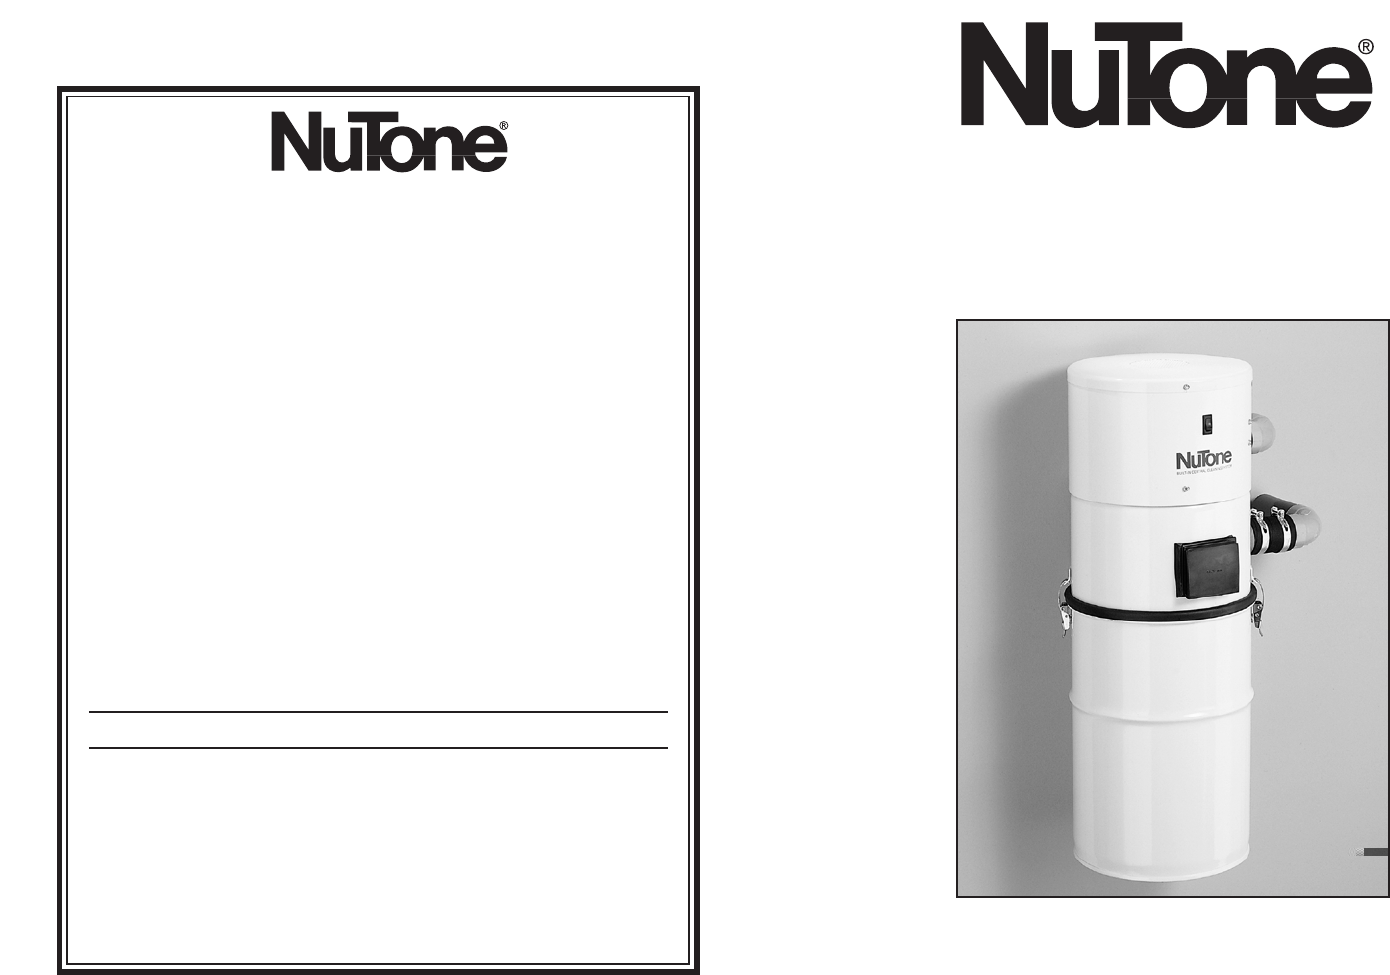 nutone water system cv350 user guide manualsonline